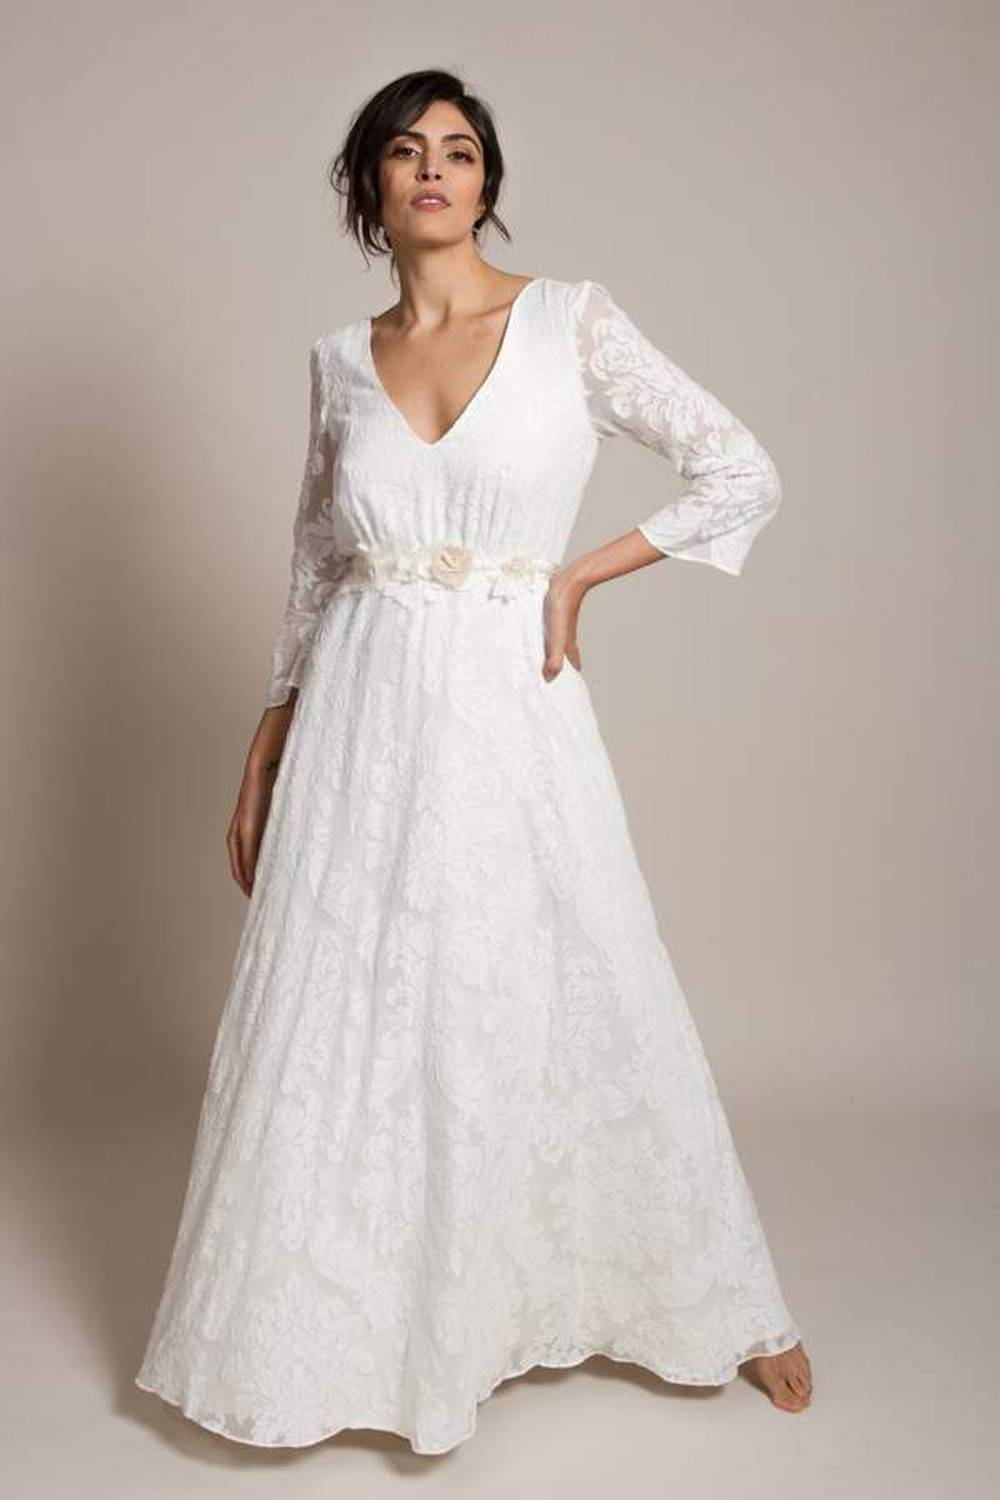 indiebride london ethical wedding gown